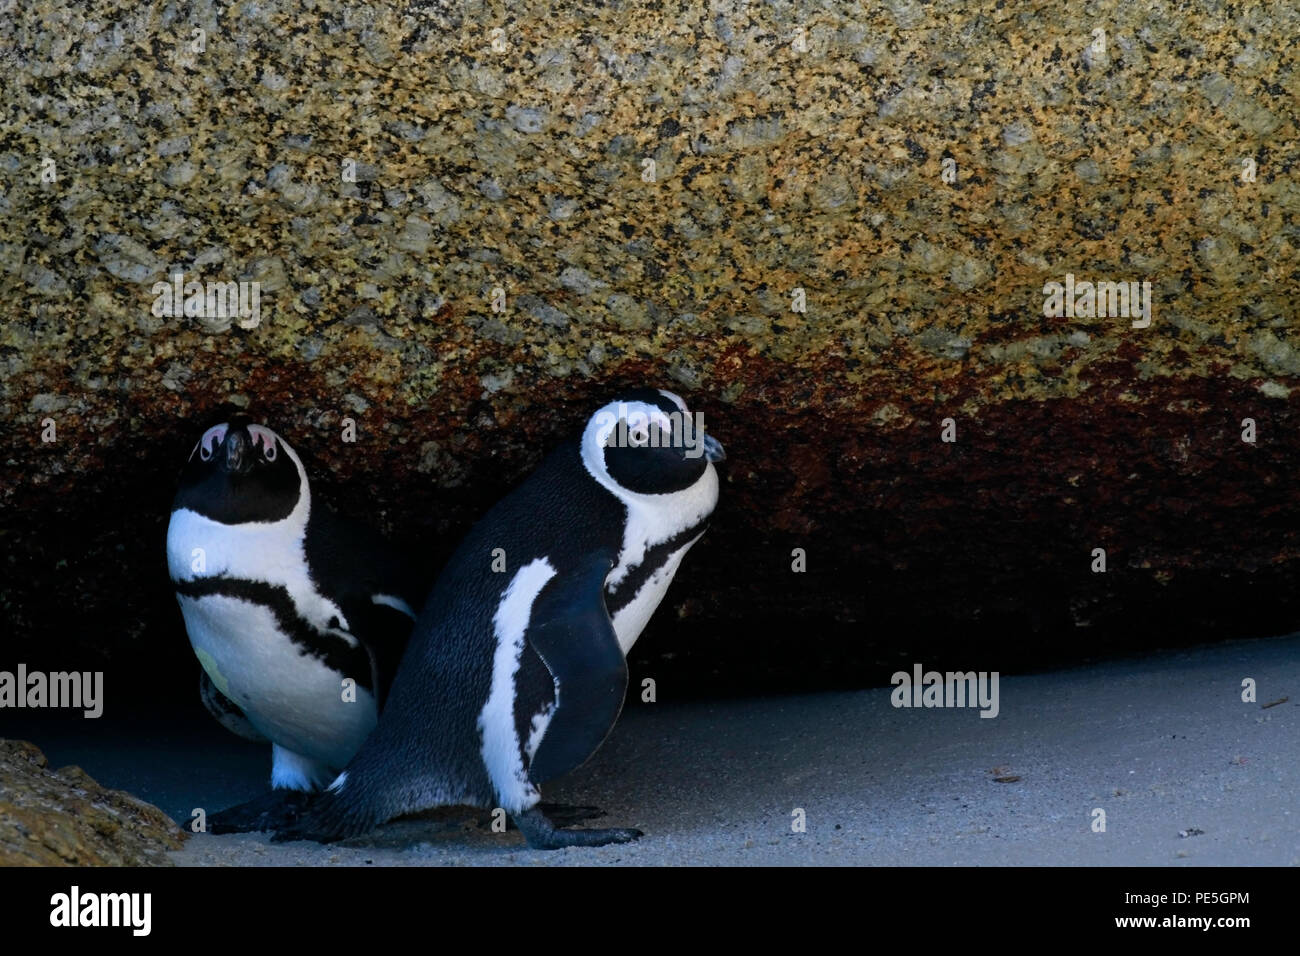 African penguins (Spheniscus demersus) at Boulders Beach Penguin Colony, Simon's Town, Cape Town,South Africa. - Stock Image